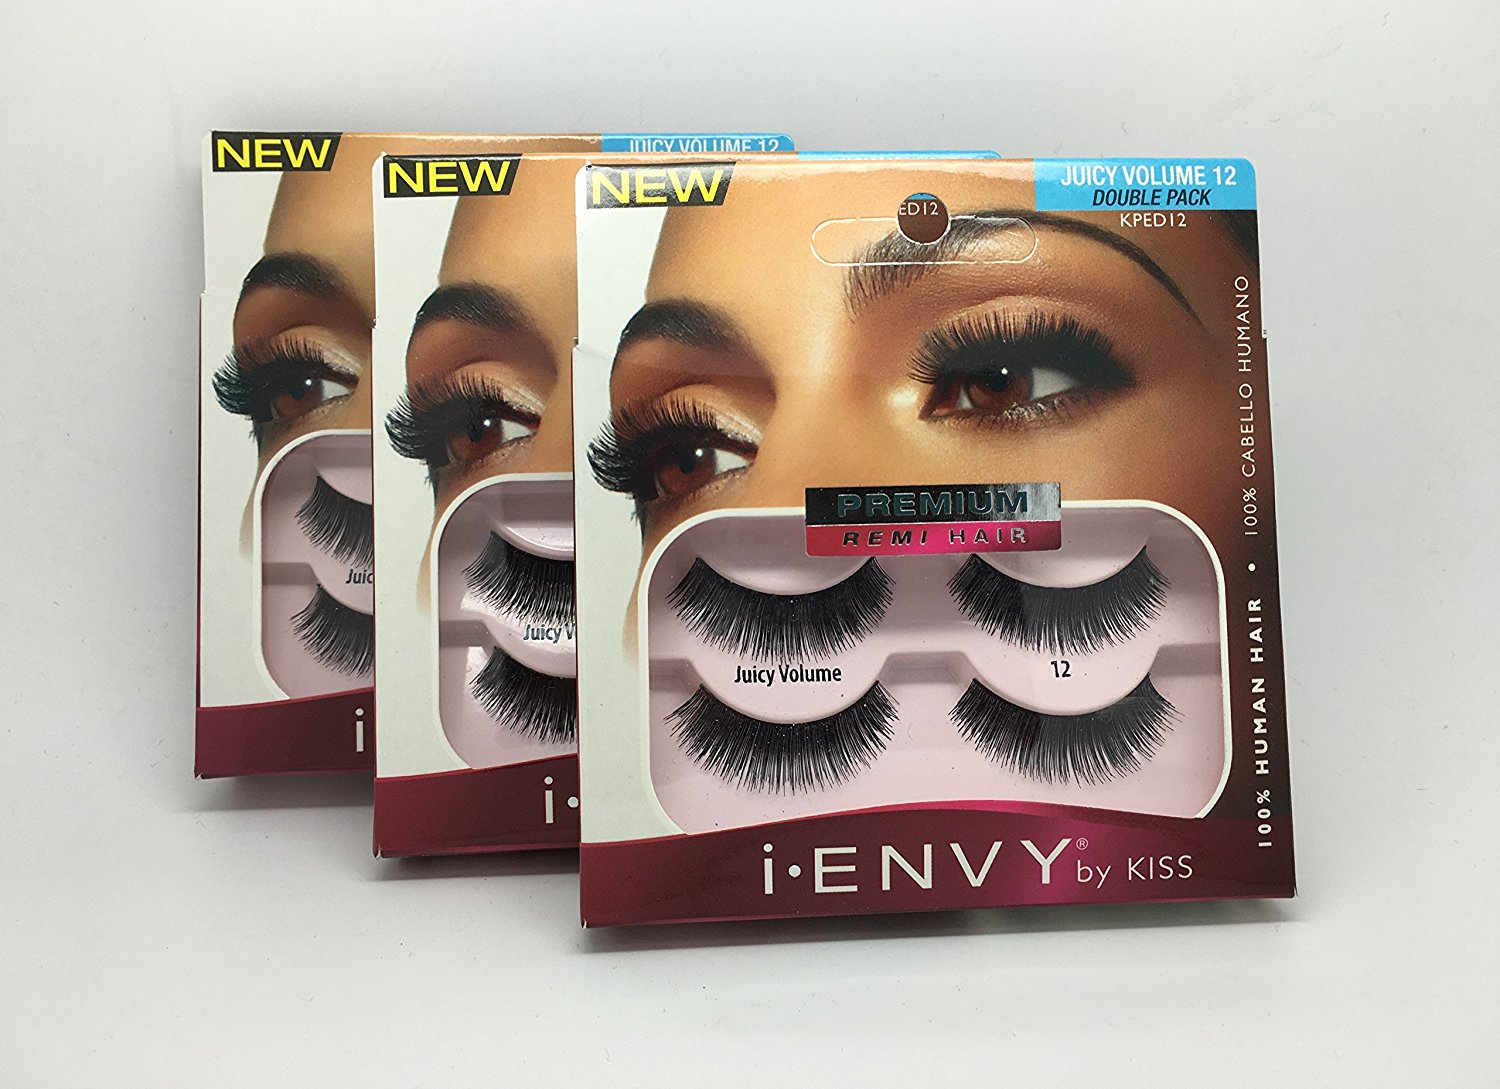 7a789b40561 Get Quotations · Kiss i-Envy Premium Human Hair False Strip Eyelashes 2 PAIR  Juicy Volume 12 (